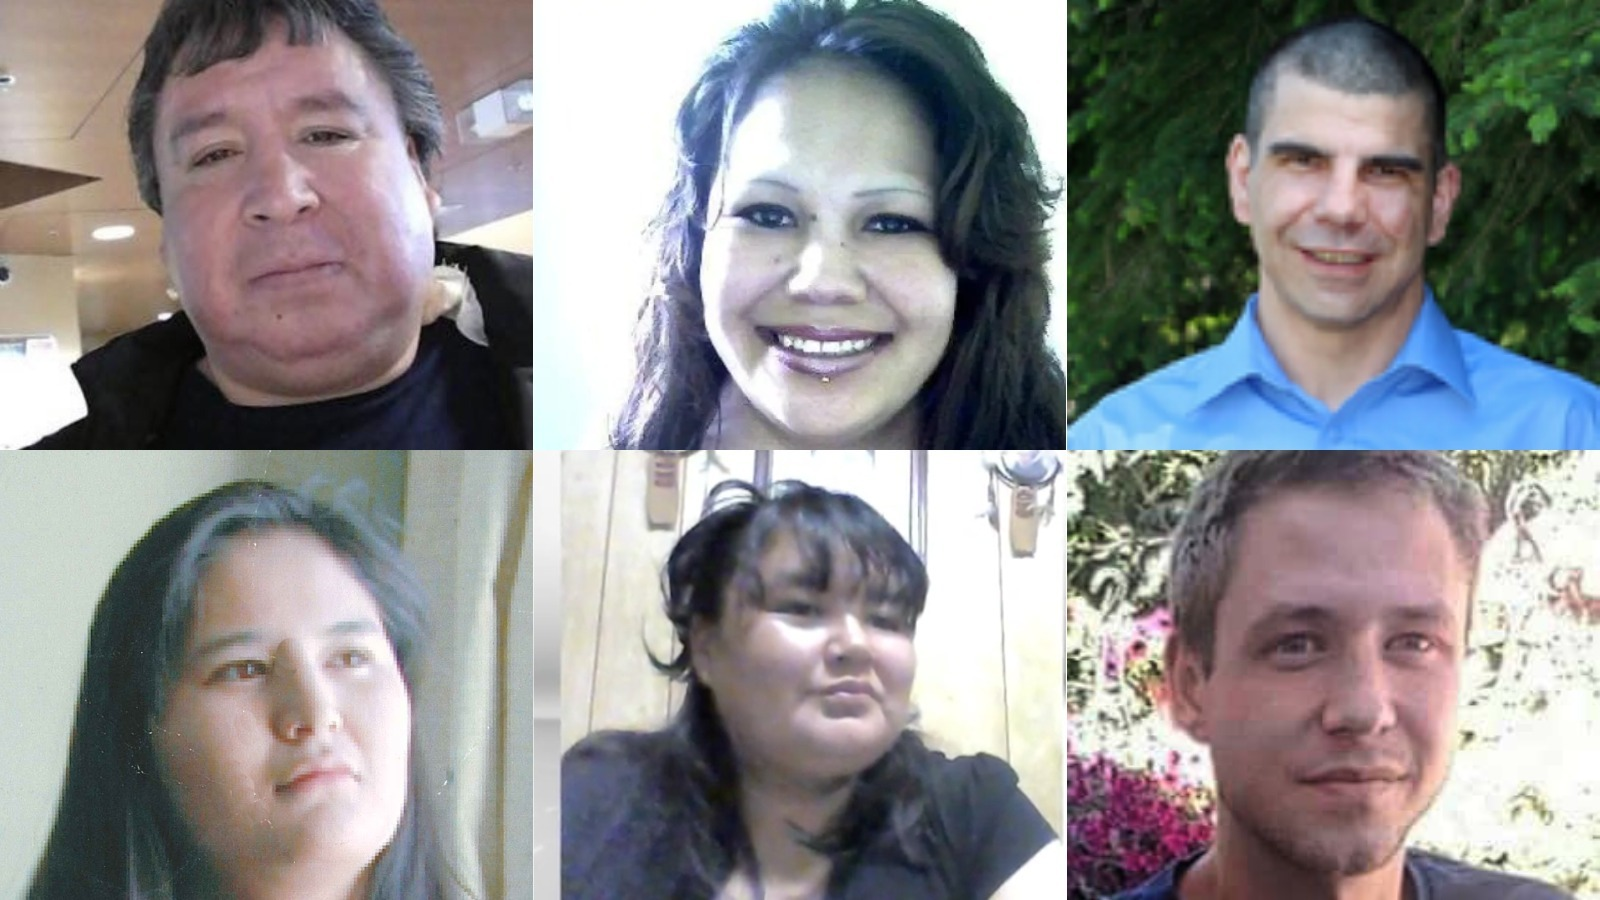 The RCMP is now seeking this man for the shooting complaint the RCMP initially considered Whitstone a suspect for. (Saskatchewan Crime Stoppers)